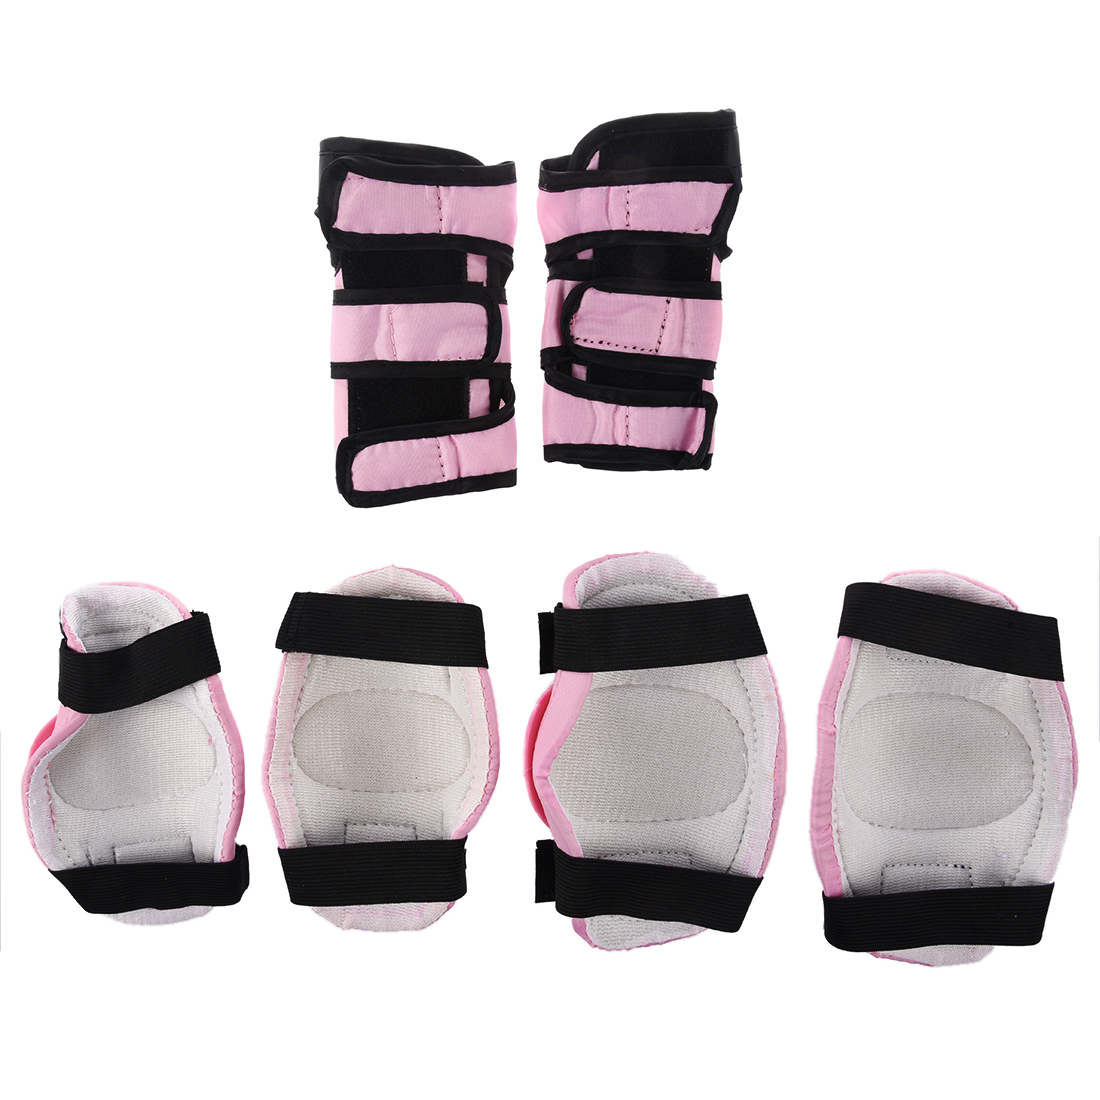 5Set Sale Boys Girls Childs Children Skate Cycle Knee Set Elbow Wrist Safety Pads Kids